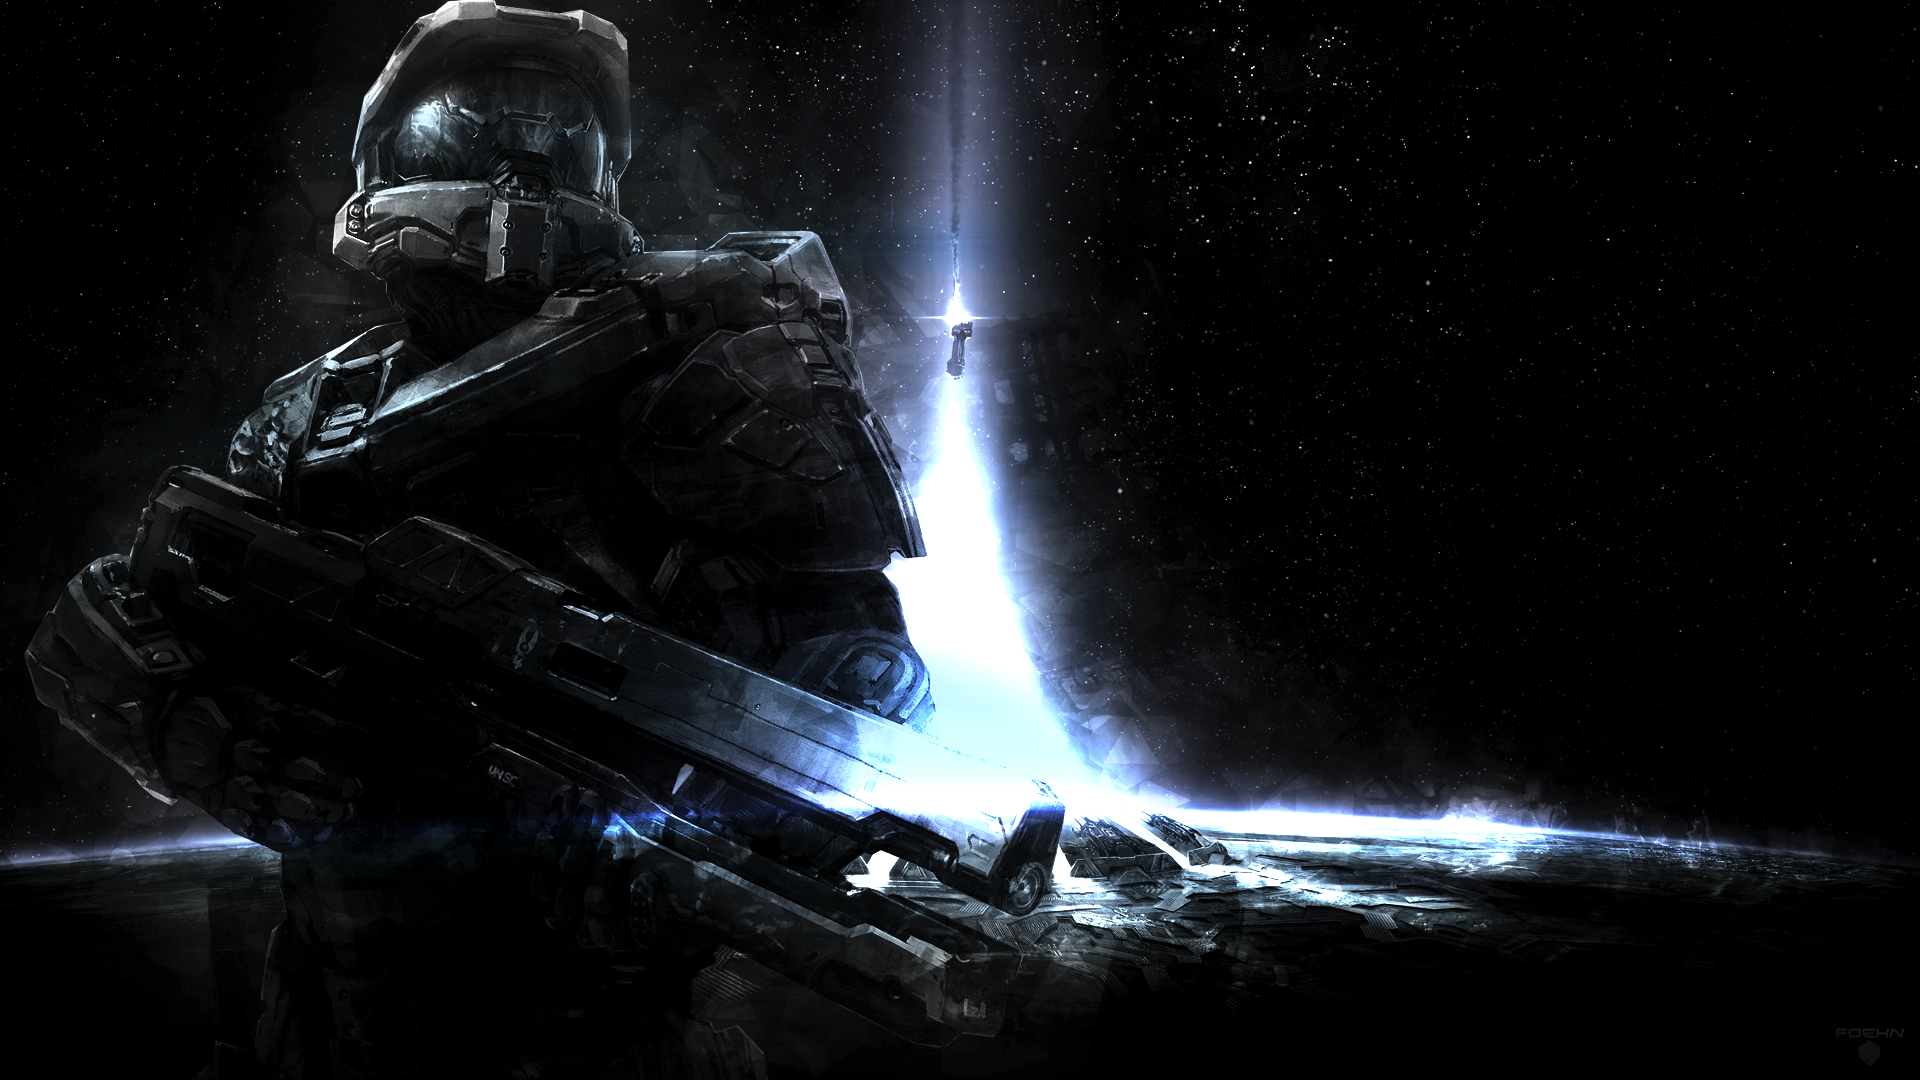 Halo 4 HD Wallpaper Background Image 1920x1080 ID378338 1920x1080